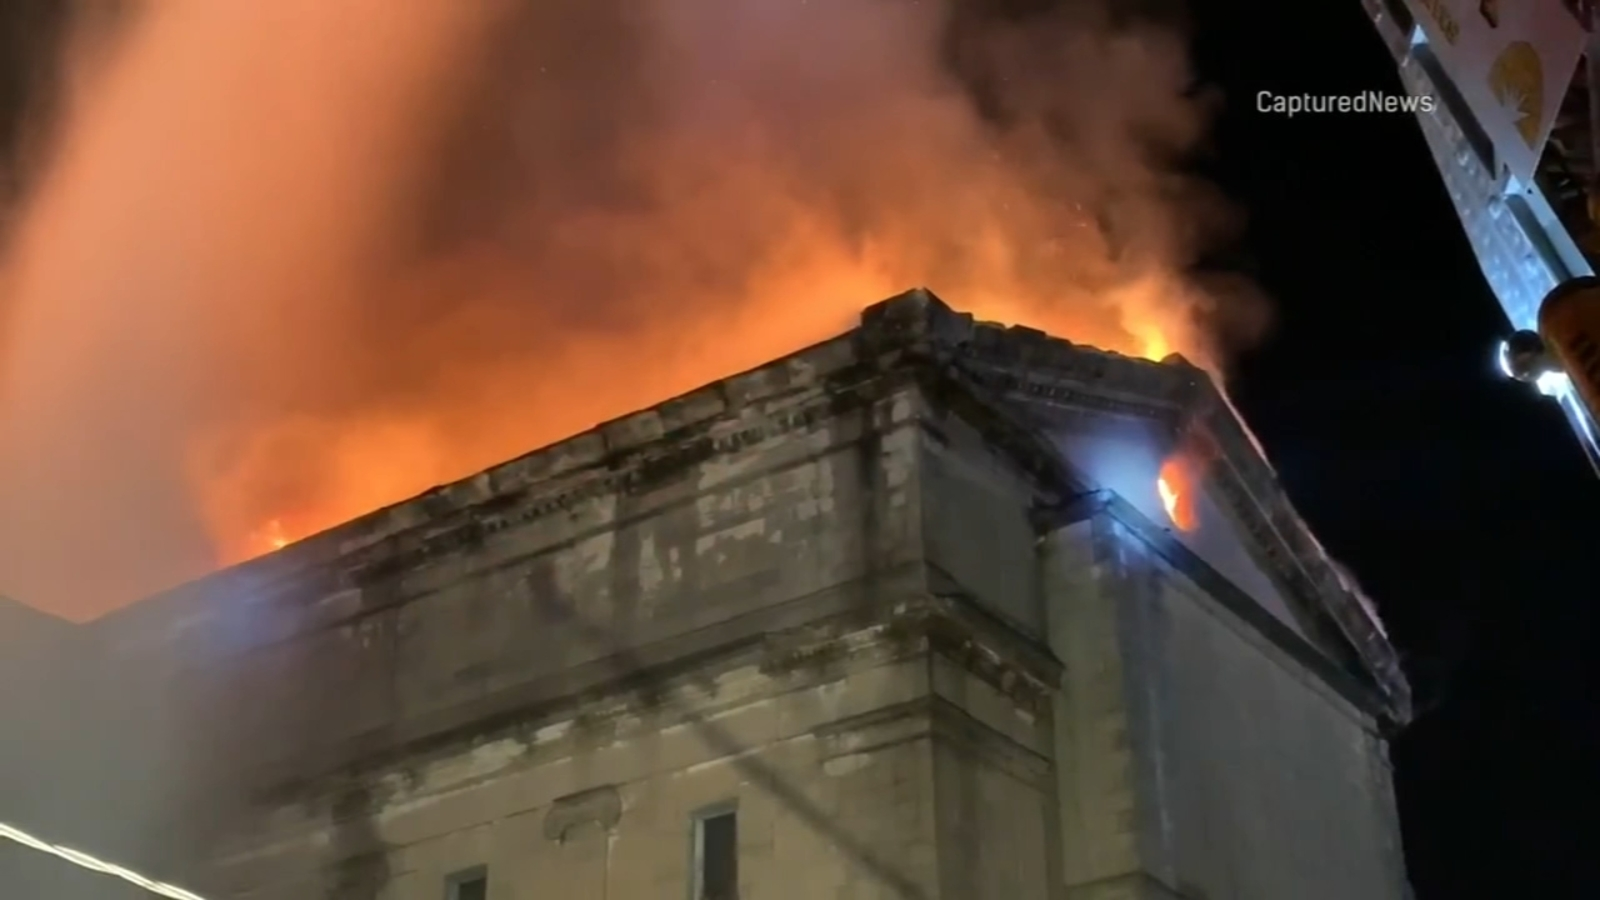 Fire destroys historic temple in downtown Aurora